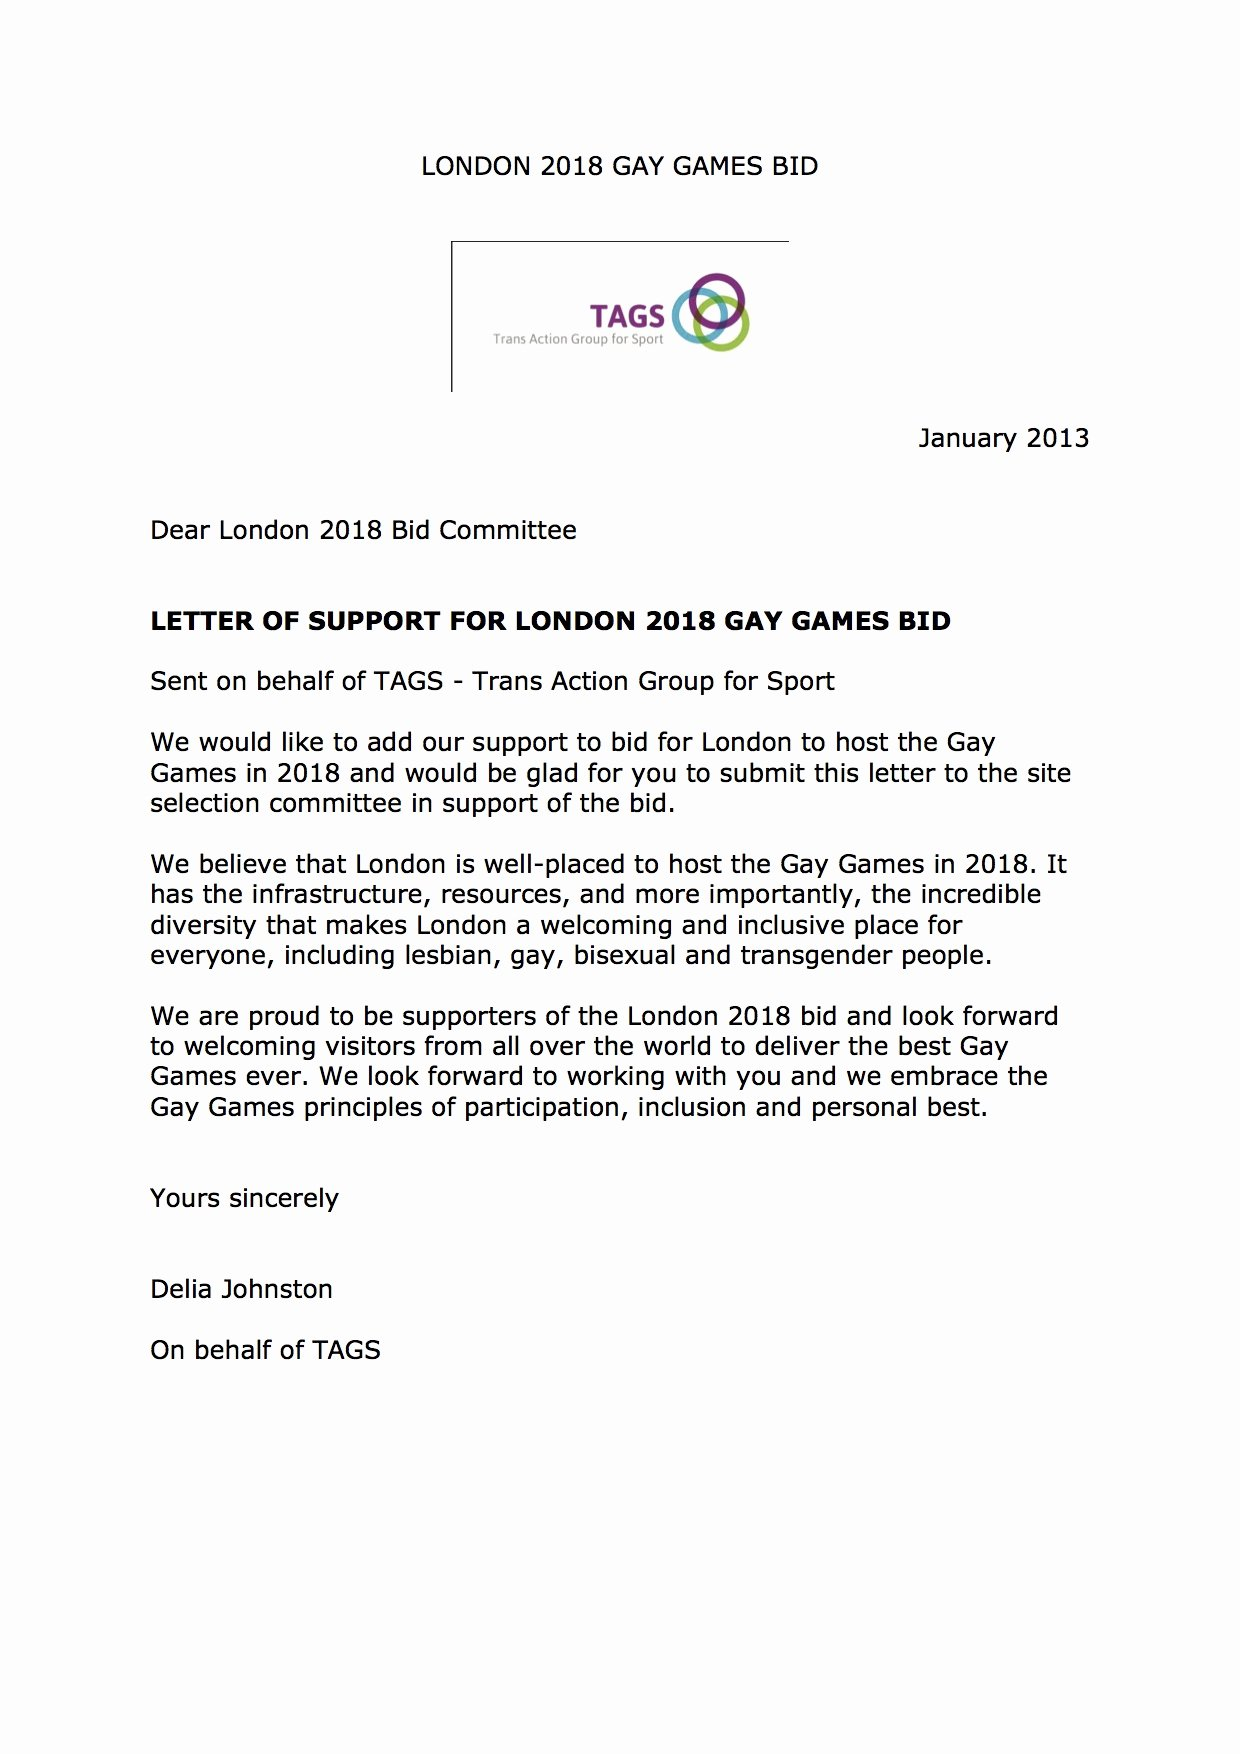 Letters Of Support Template Best Of Trans Action Group for Sport Letter Of Support